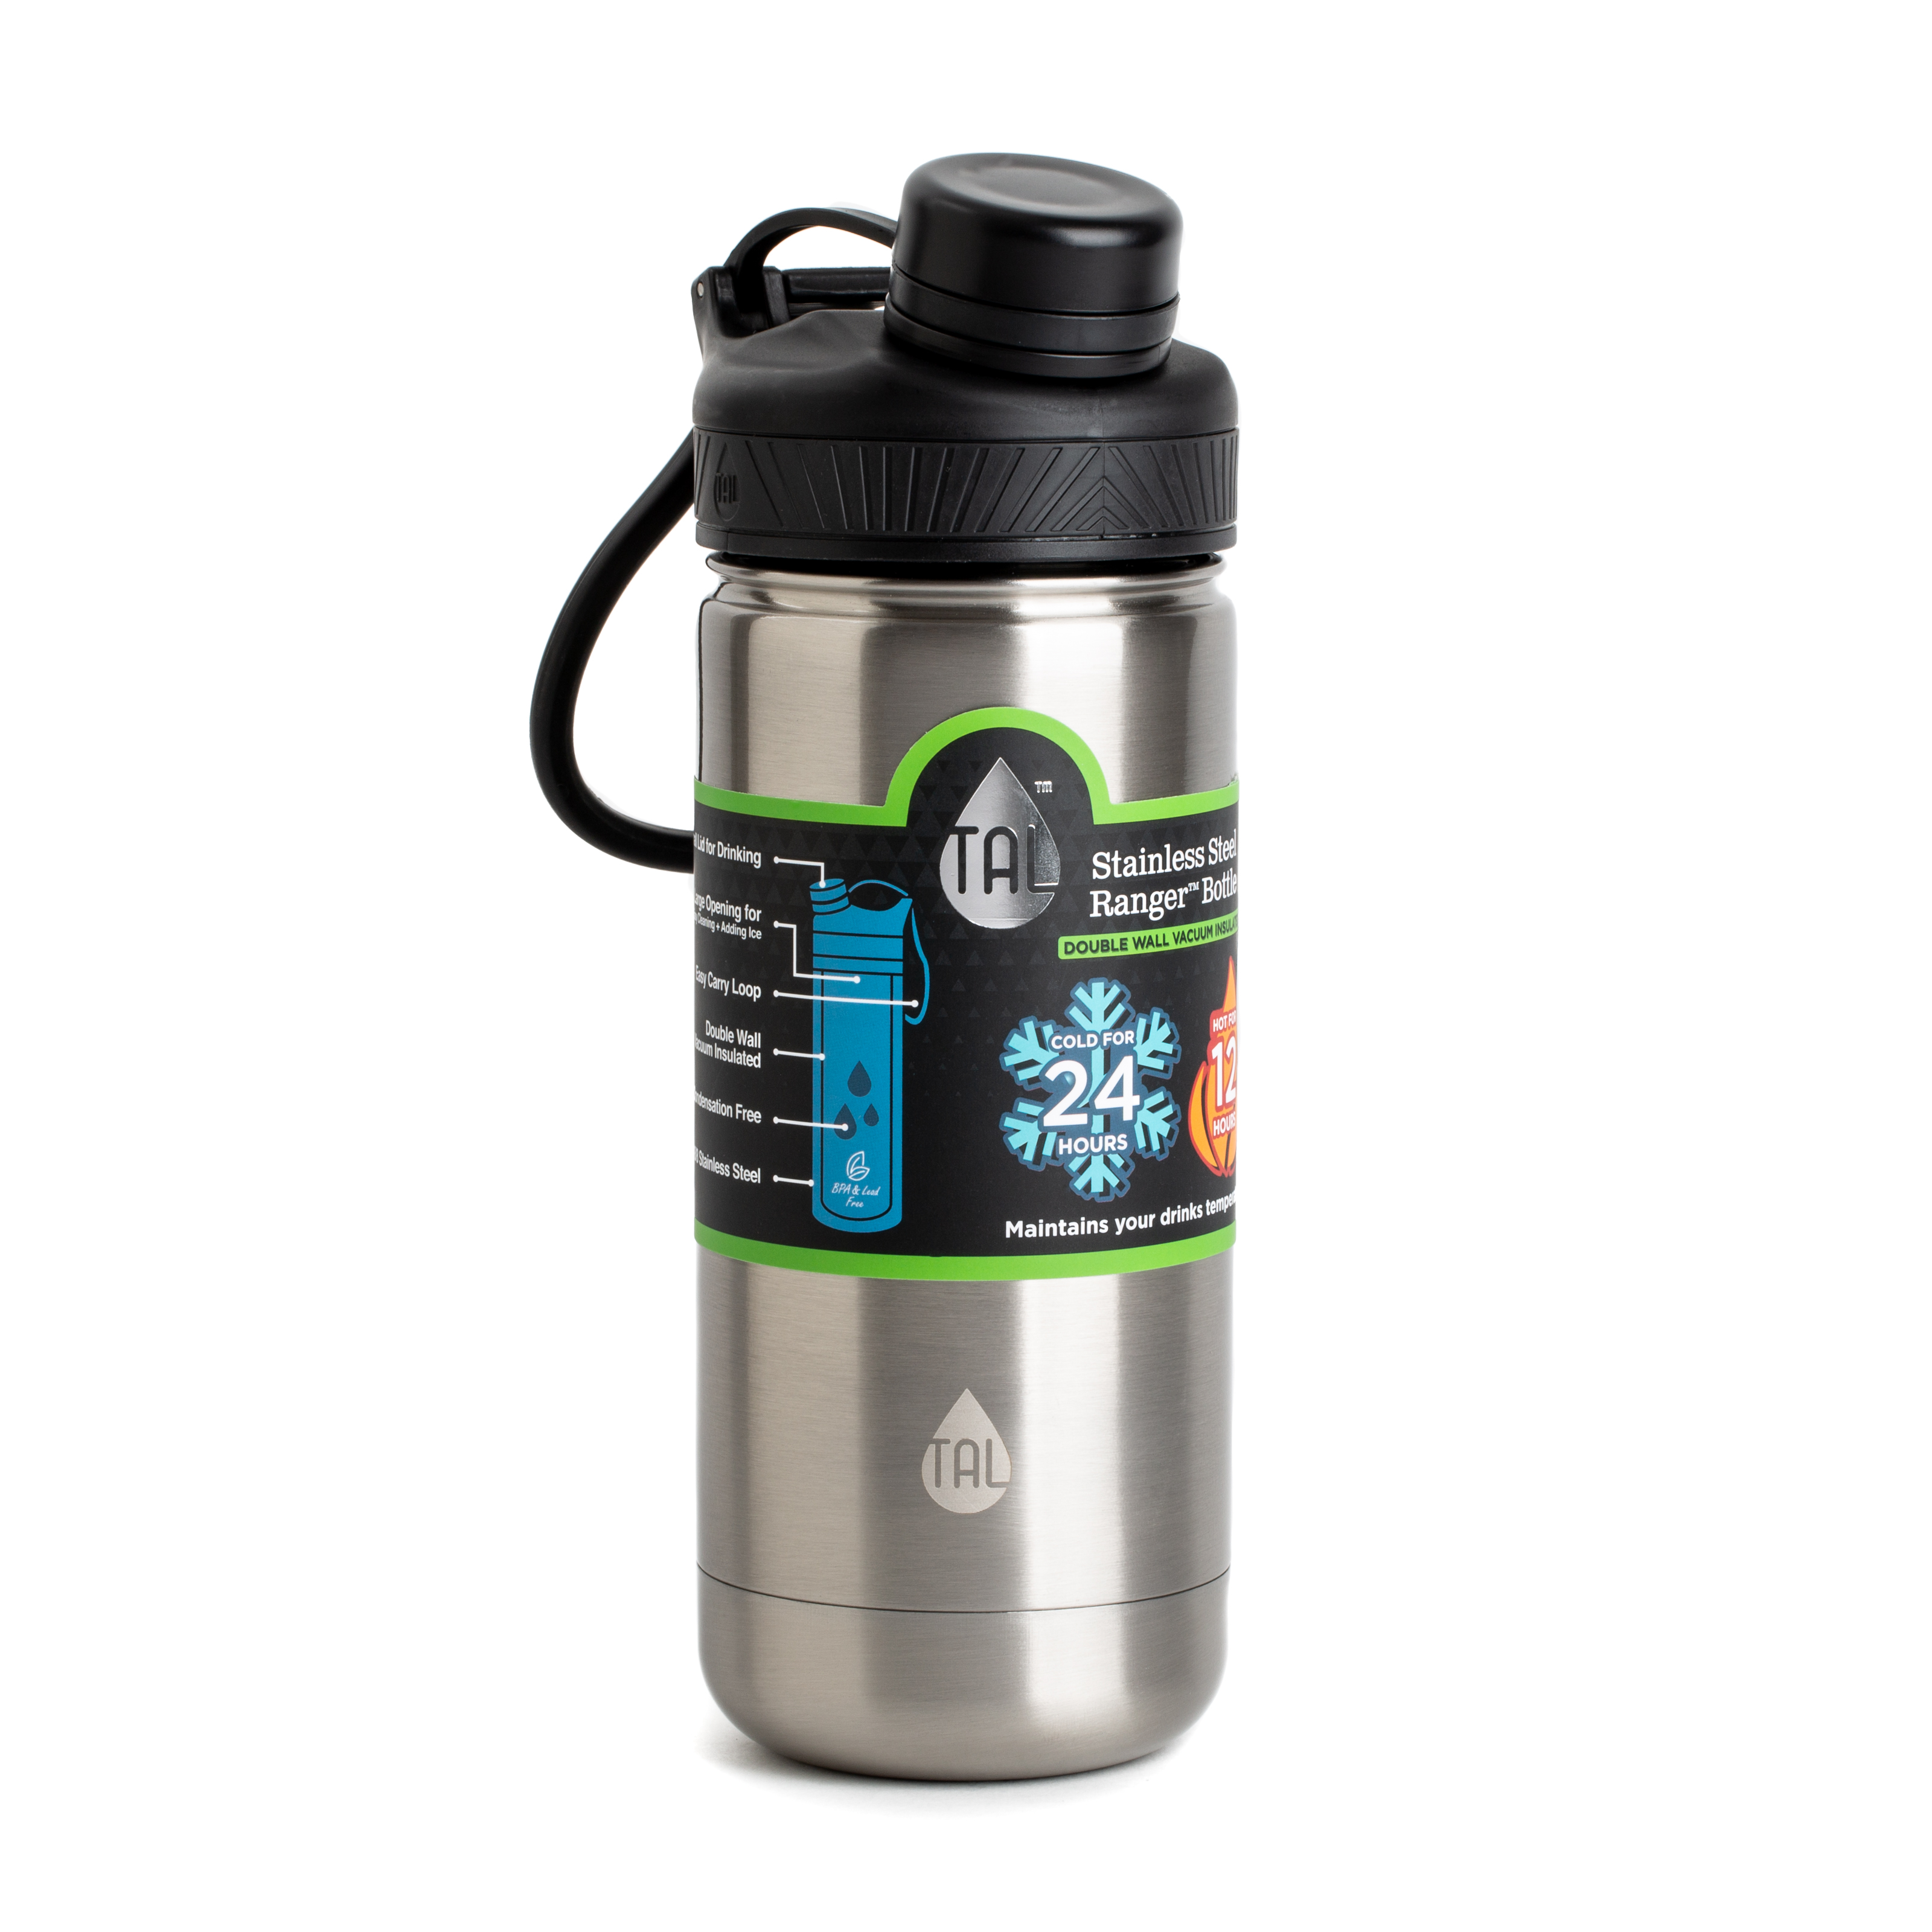 TAL 18oz Double Wall Vacuum Insulated Stainless Steel Ranger™ Pro Black